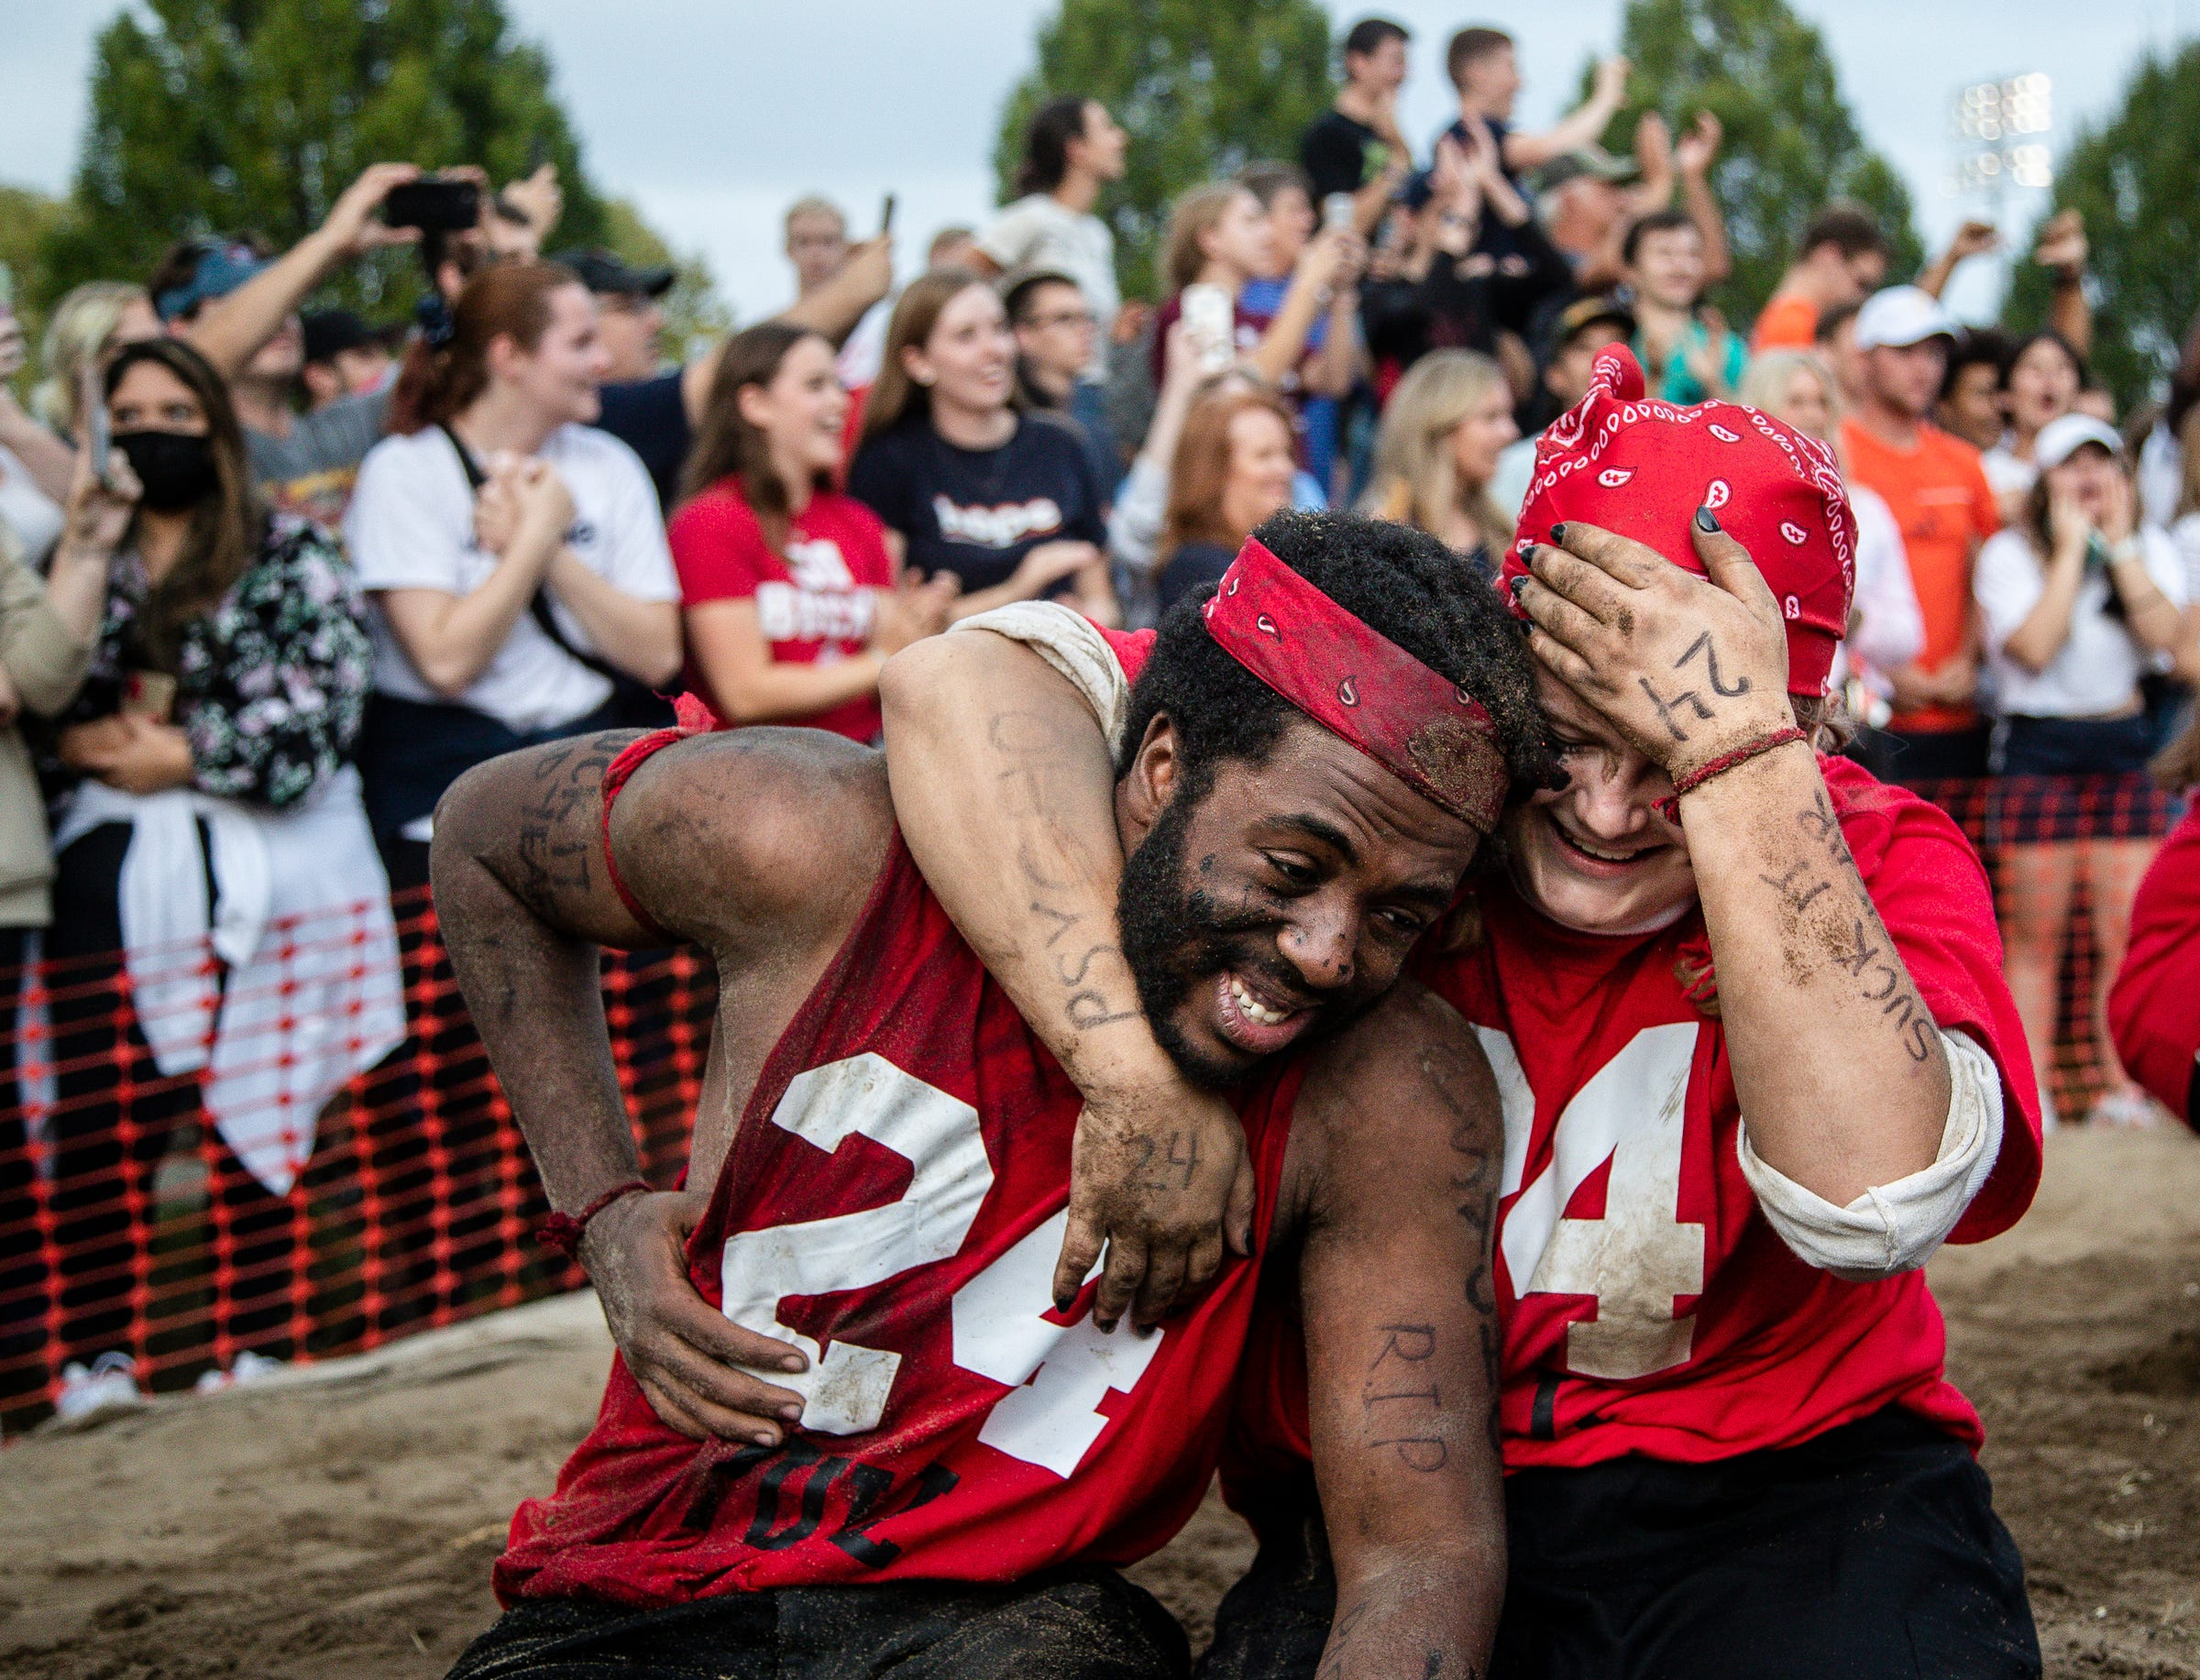 Even year puller Amadu Bah and morale booster Ruth Pasek climb out of the pit to celebrate their team's win over the odd year team during the Pull, an annual tug-of-war between the freshmen and sophomore classes at Hope College in Holland on Saturday, Oct. 2, 2021.